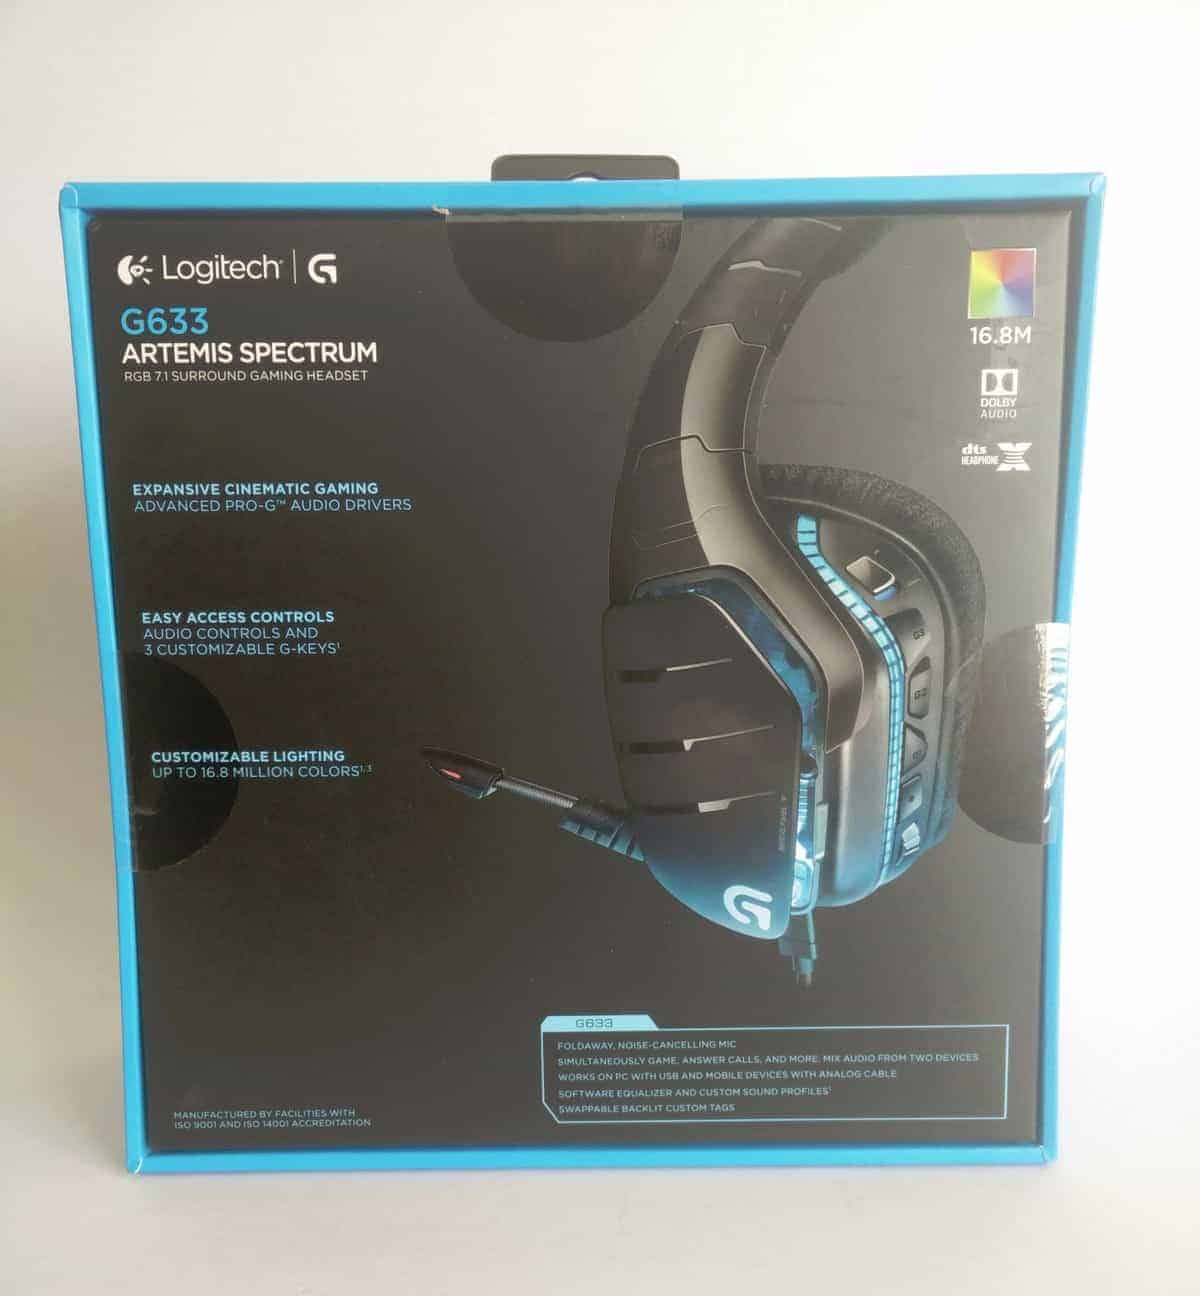 Logitech G633 Artemis Spectrum Headset Review - The Streaming Blog